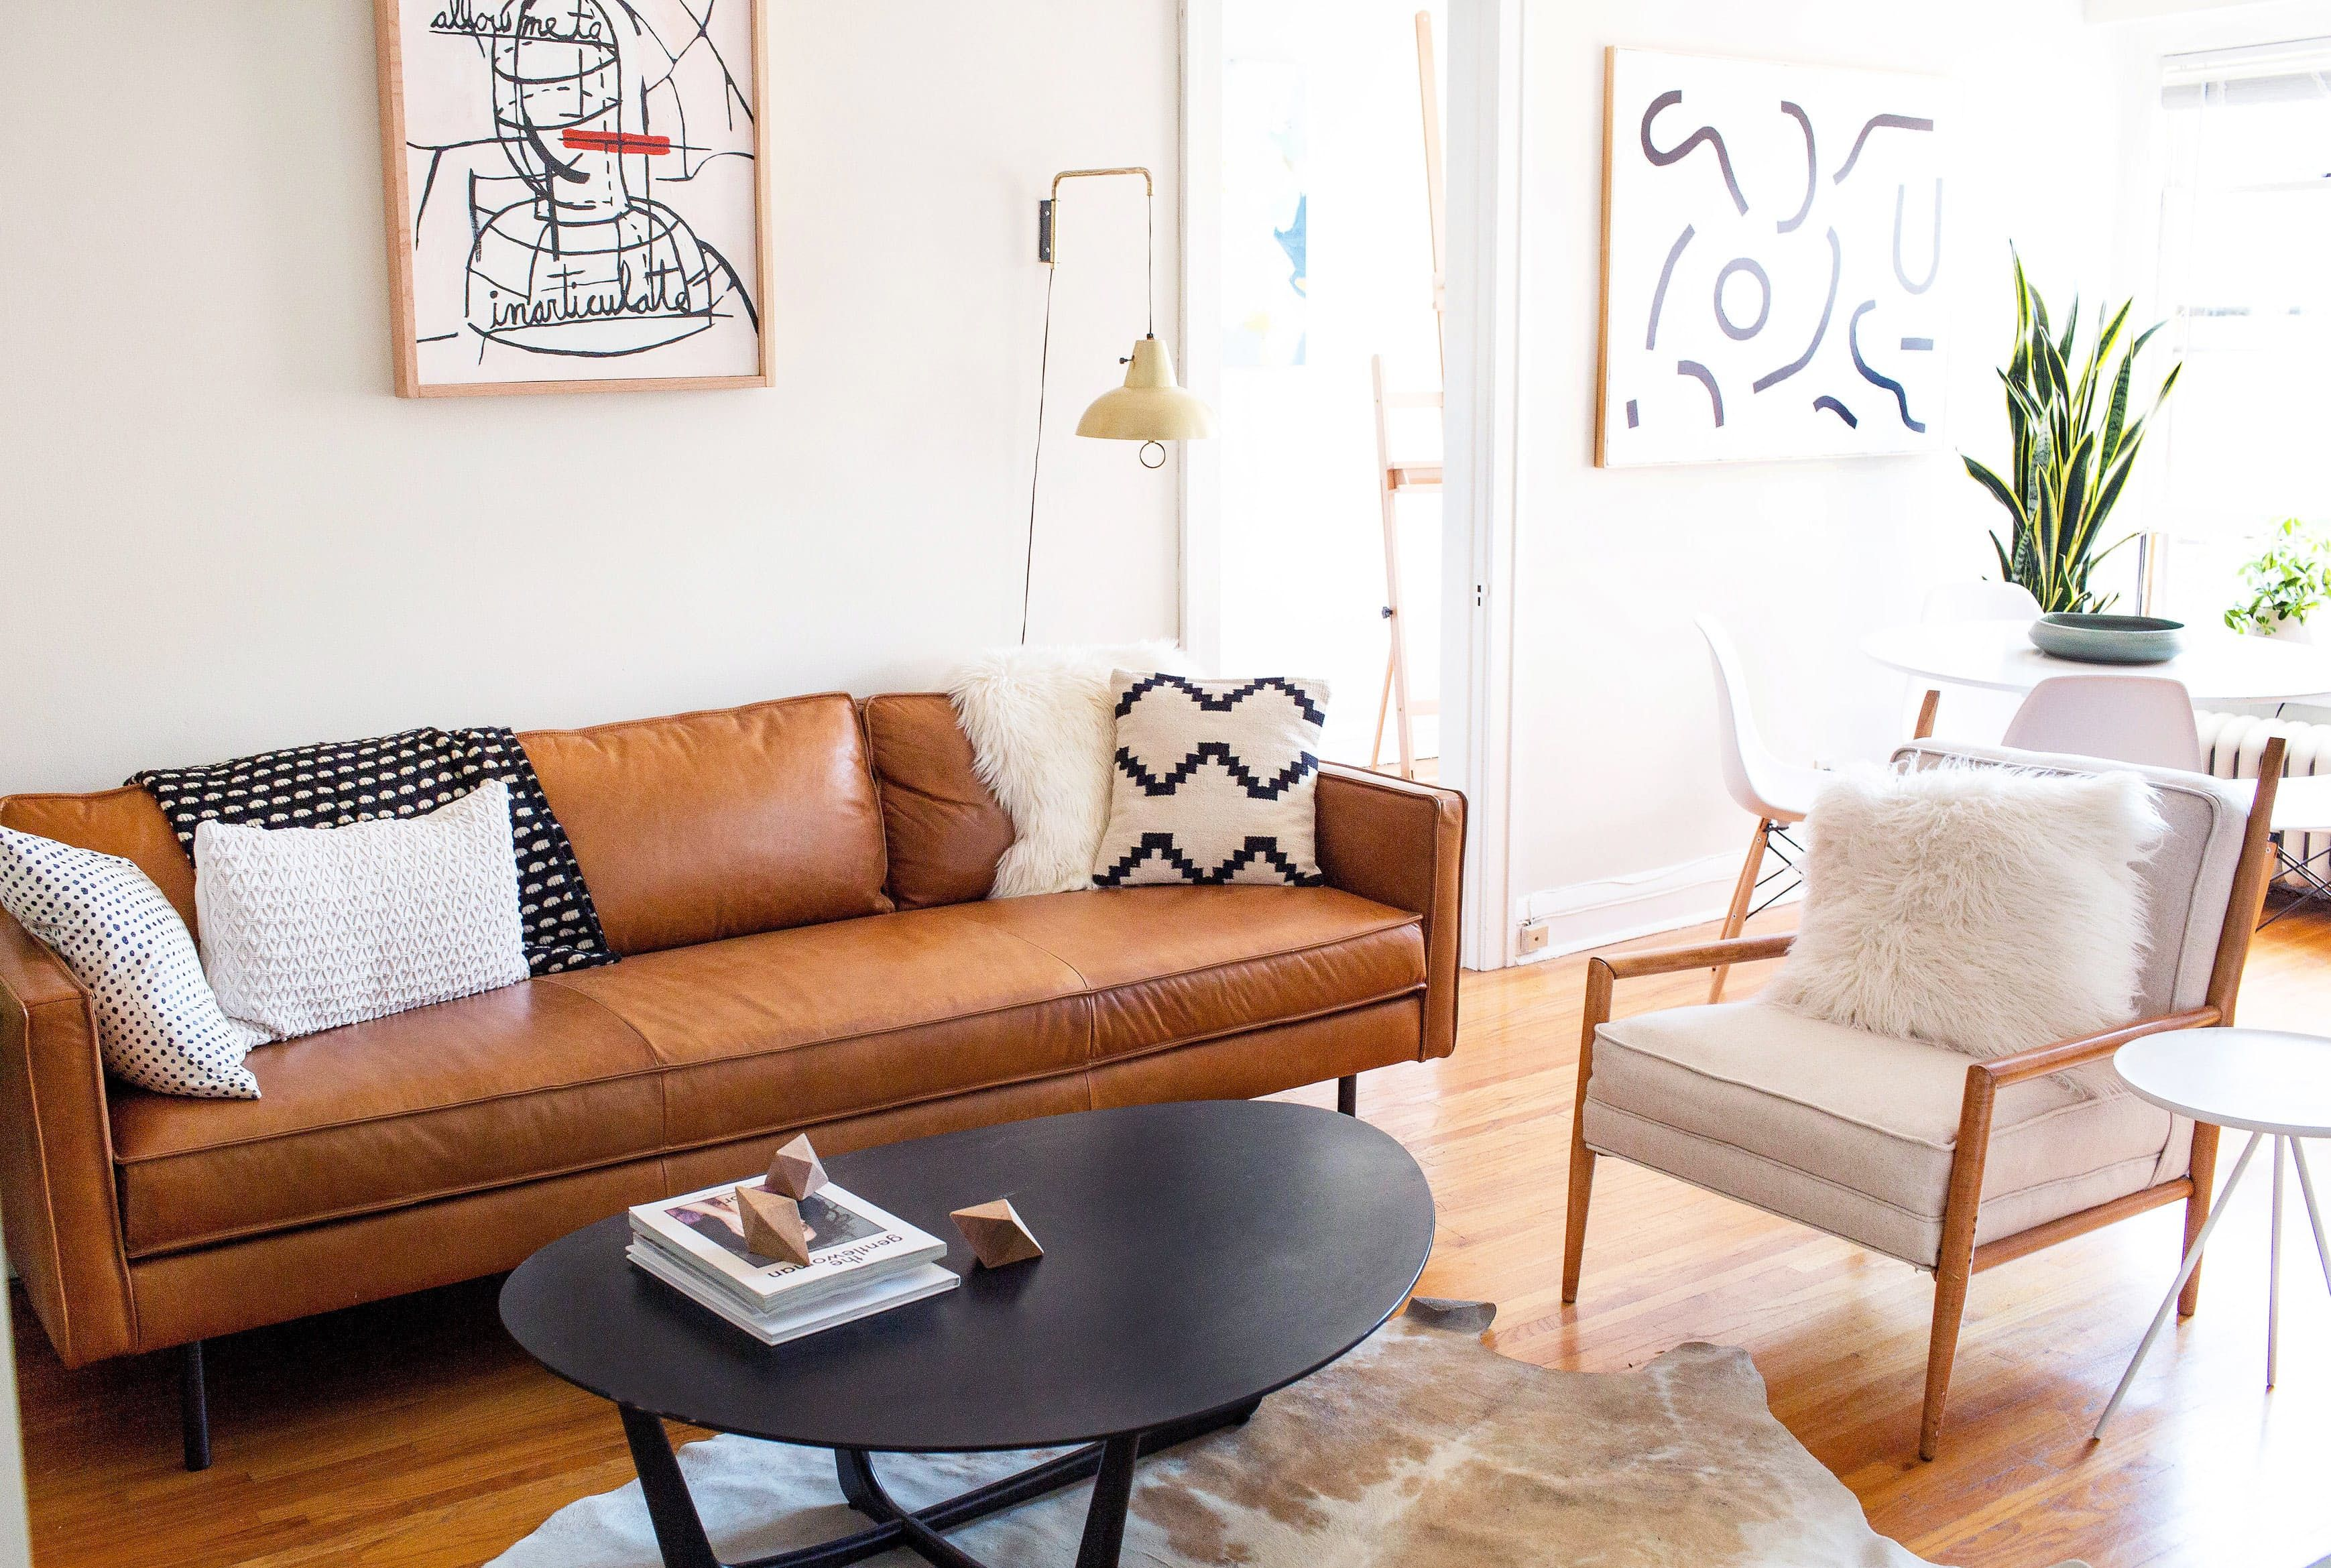 Beau The Axel Leather Sofa Steals The Show In This Artistu0027s Apartment!